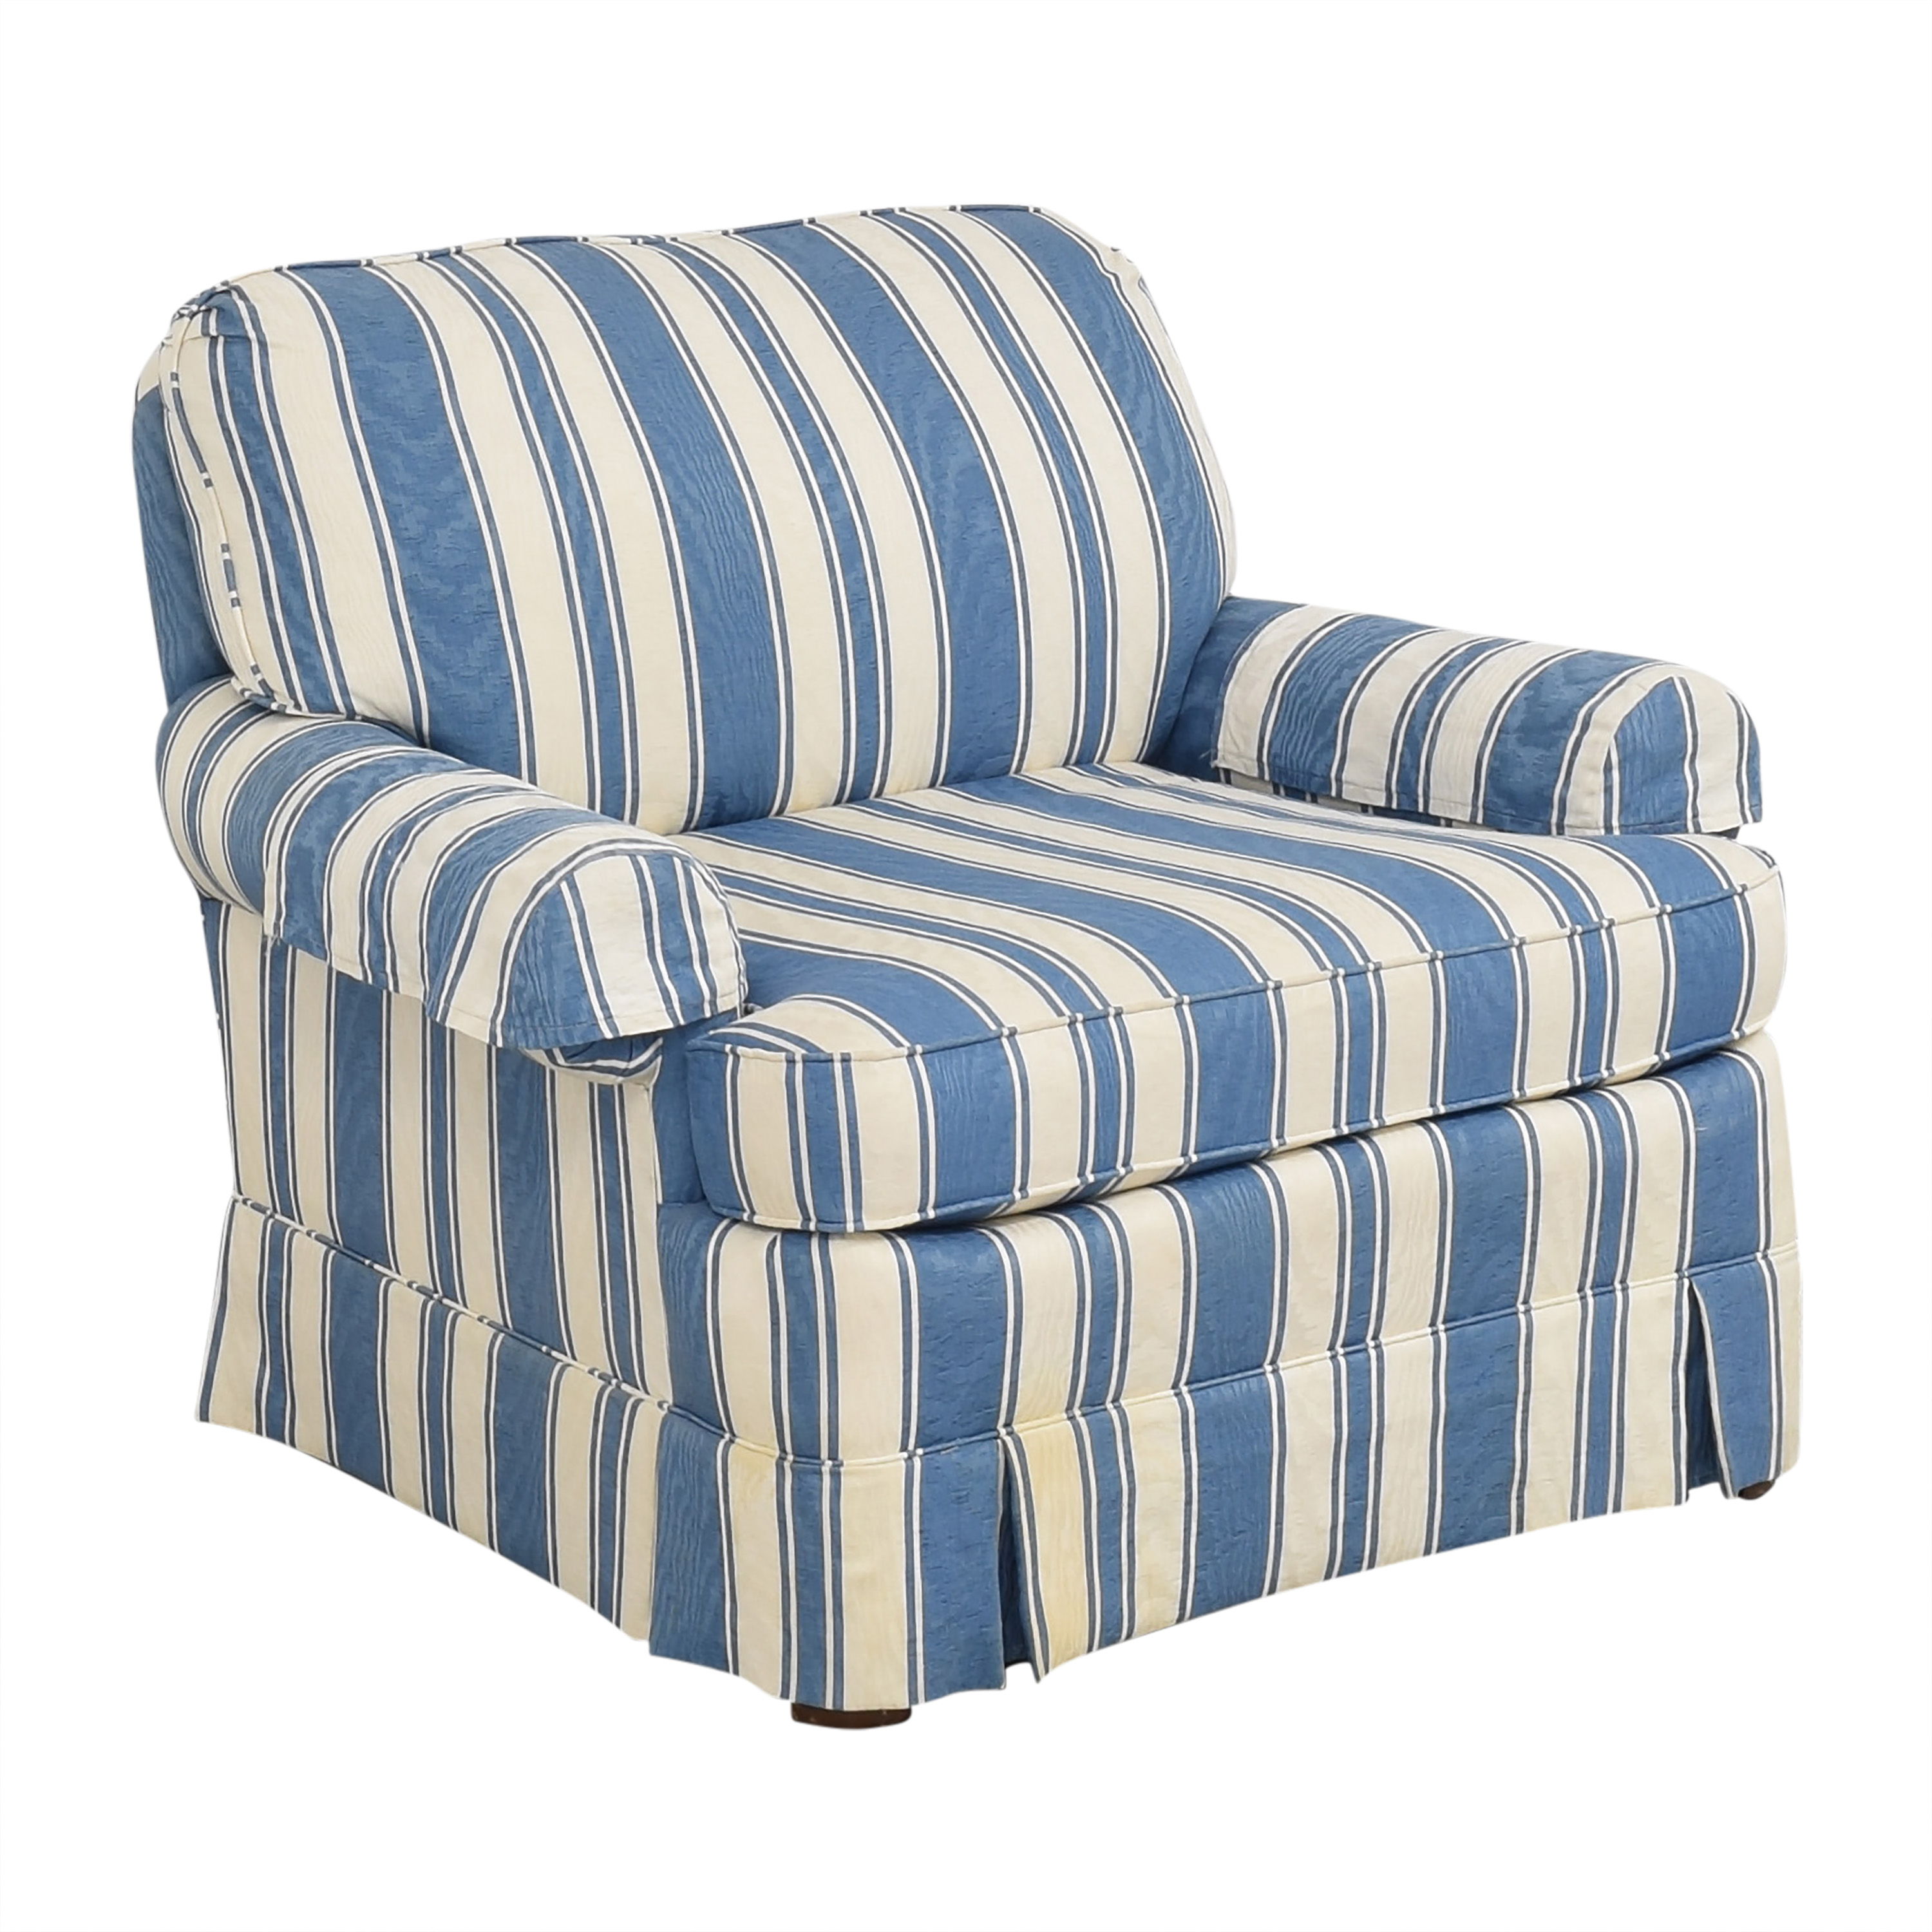 Clayton Marcus Clayton Marcus Striped Accent Chair for sale